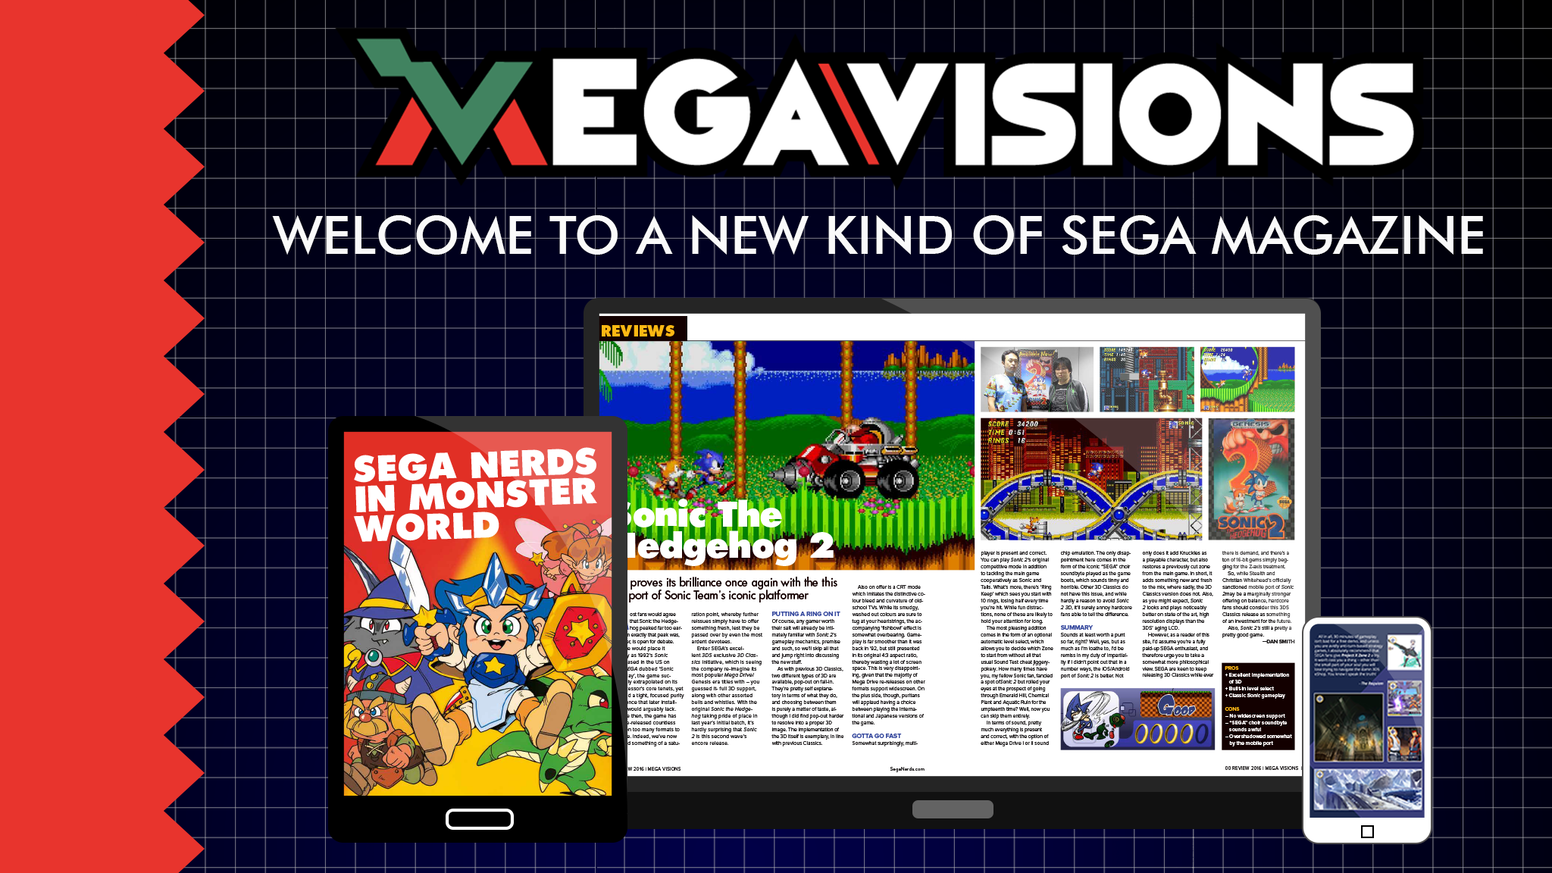 Mega Visions Magazine is a digital magazine dedicated to delivering top-notch SEGA coverage from past to present designed for all your devices.